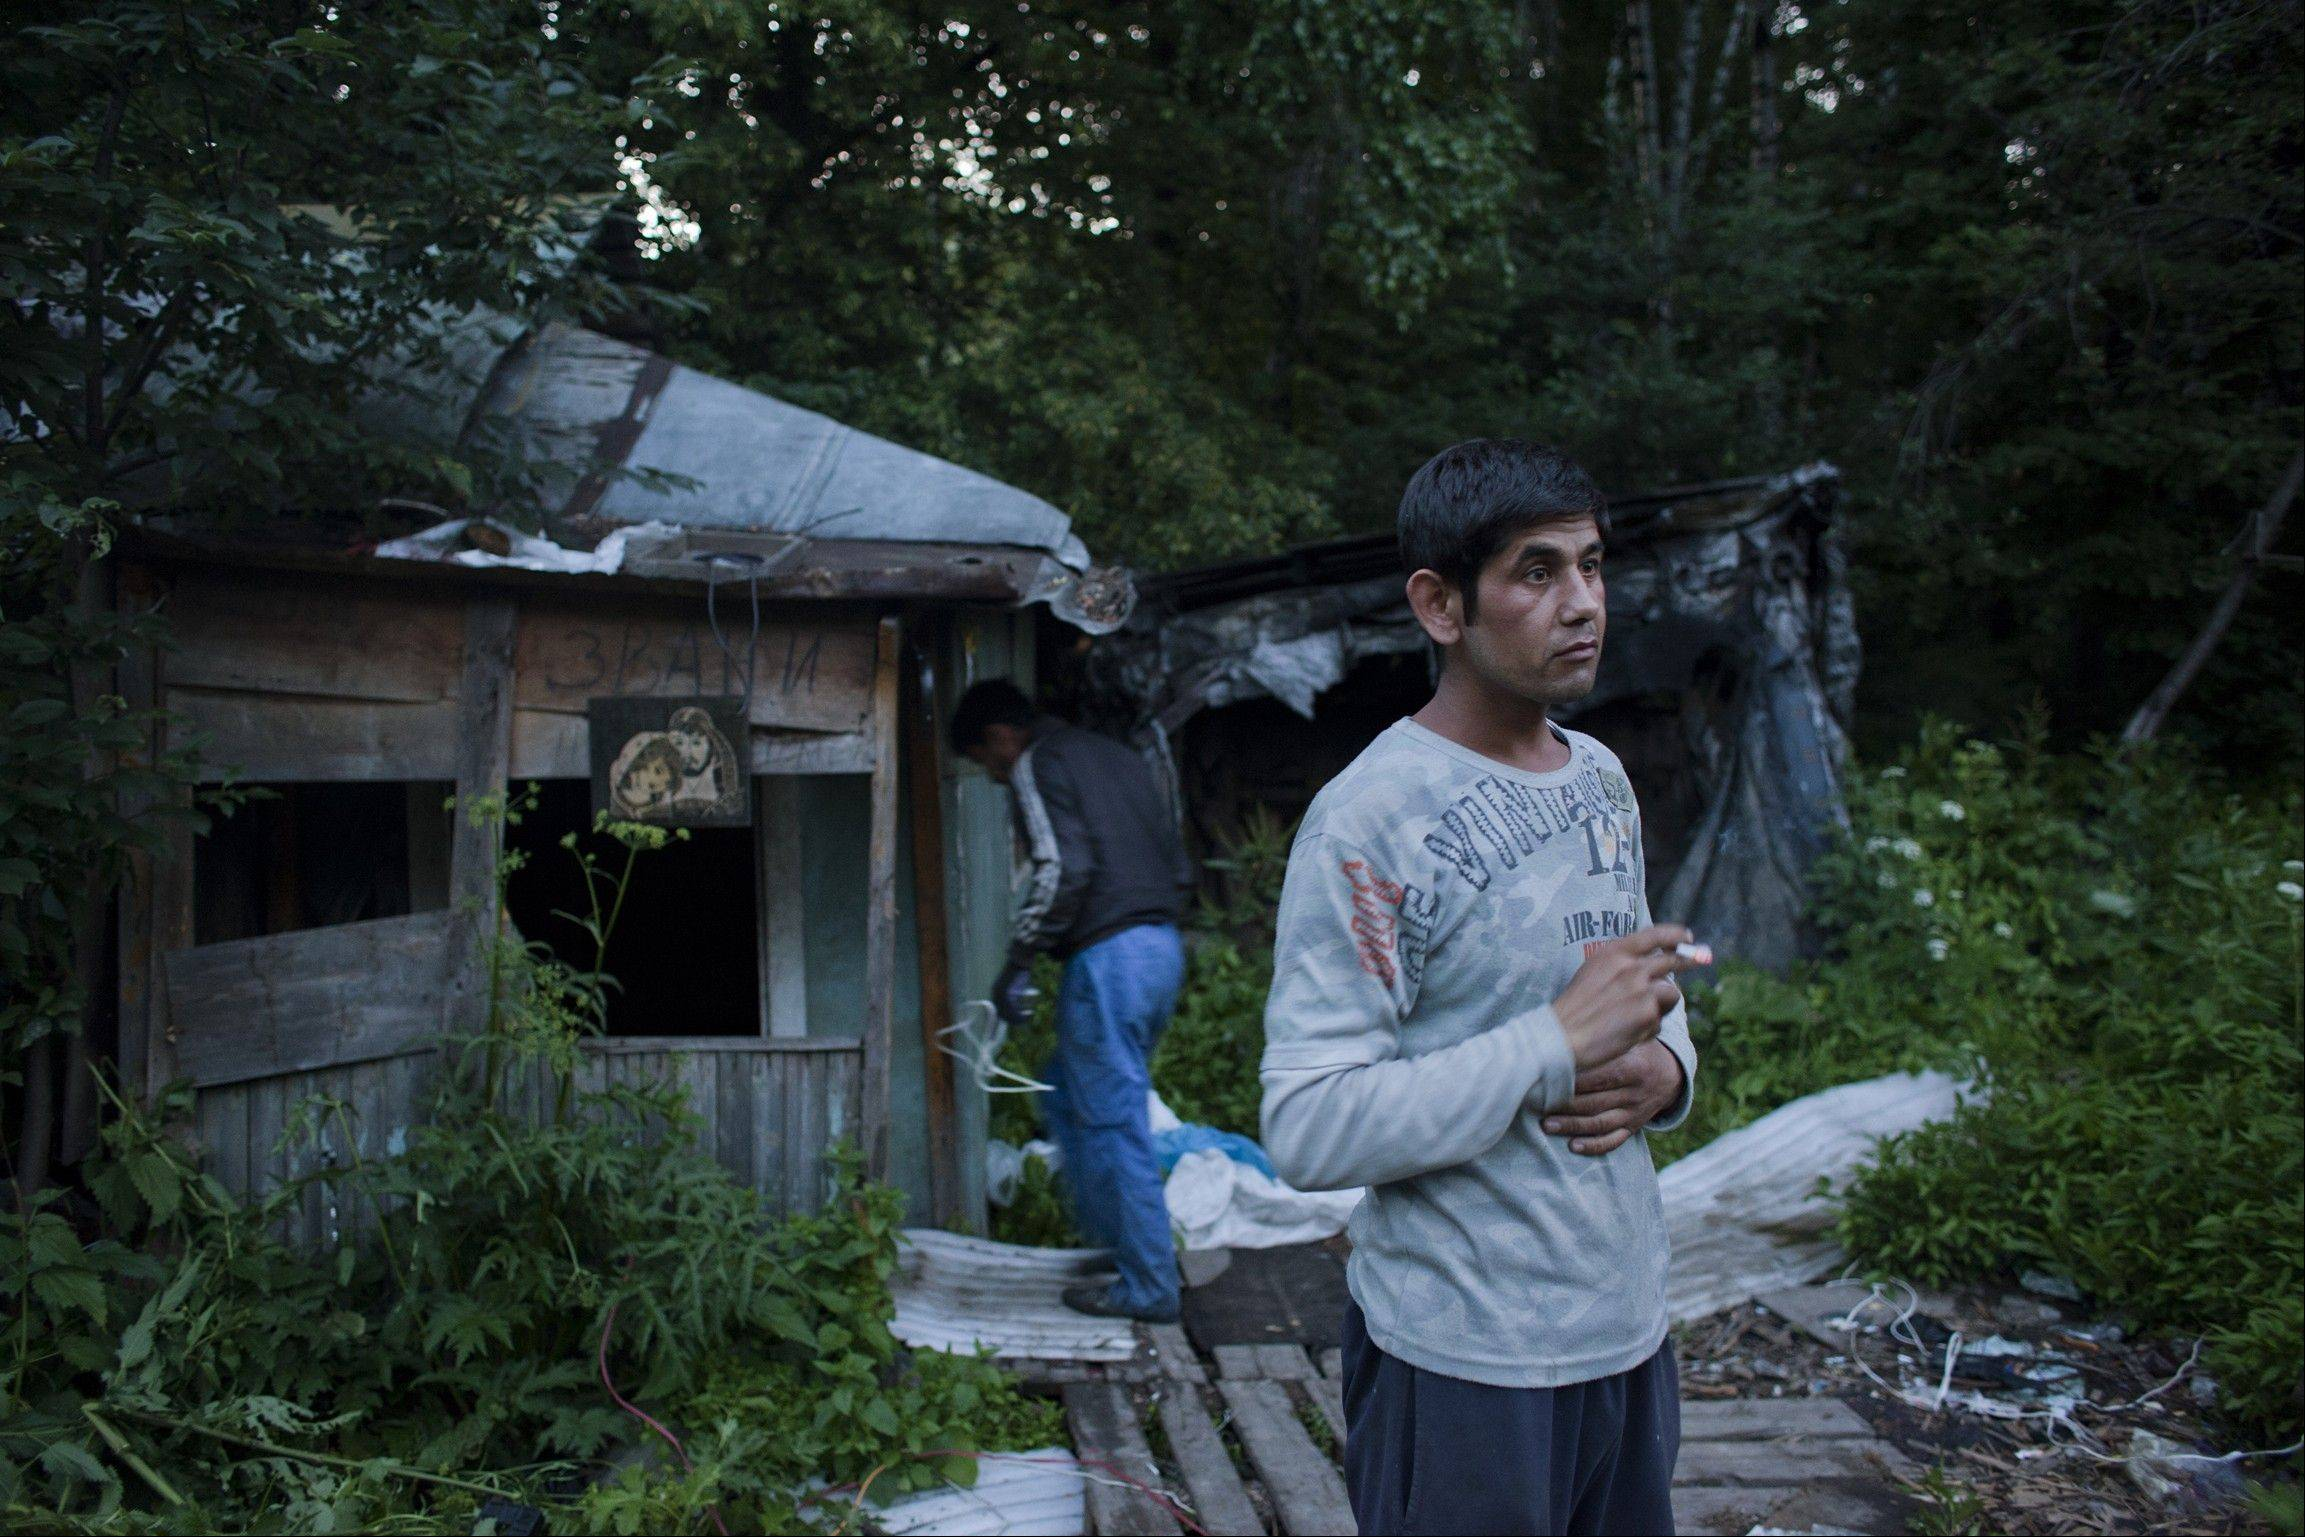 Odil Sattorov, 29, takes a cigarette break outside the shack in the woods of suburban Moscow where he and two other migrants from the Khatlon region of Tajikistan live. In Moscow, prejudice against Central Asians gives young nationalists a target for their anger.